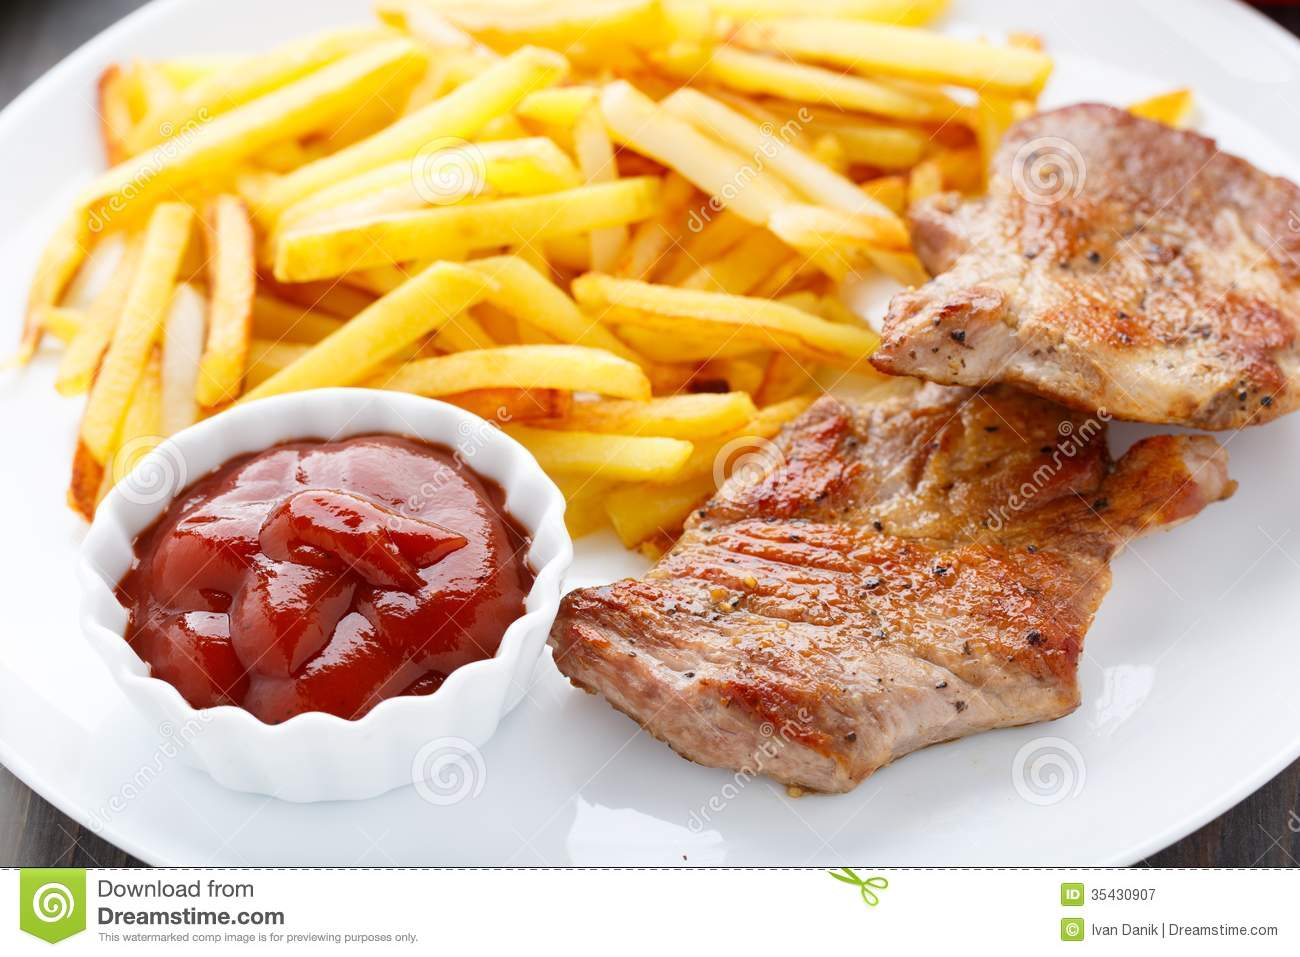 Image result for image of steak and ketchup